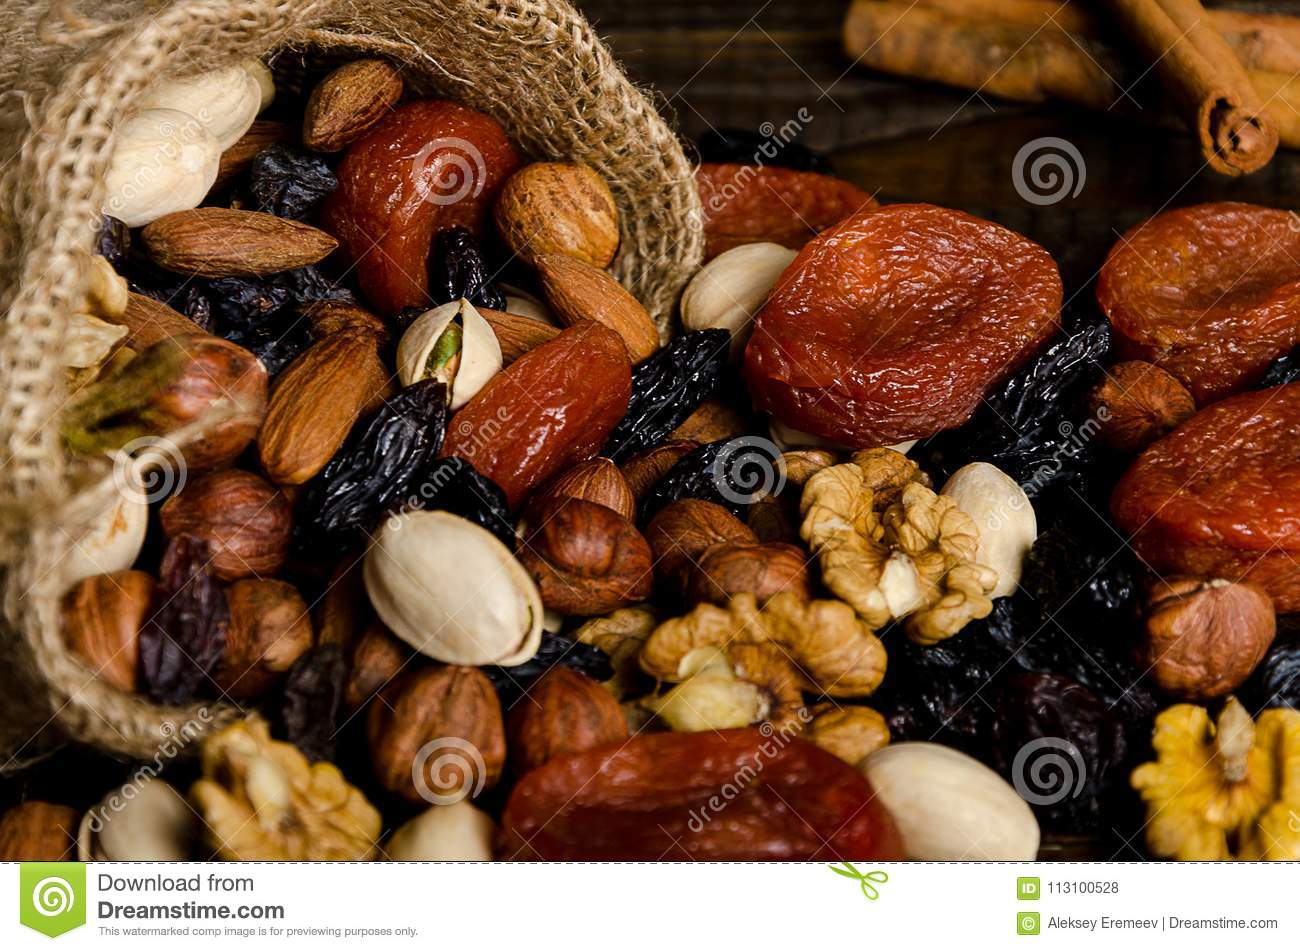 Nuts, dried fruits, pistachios and other scattered from the bag on the table